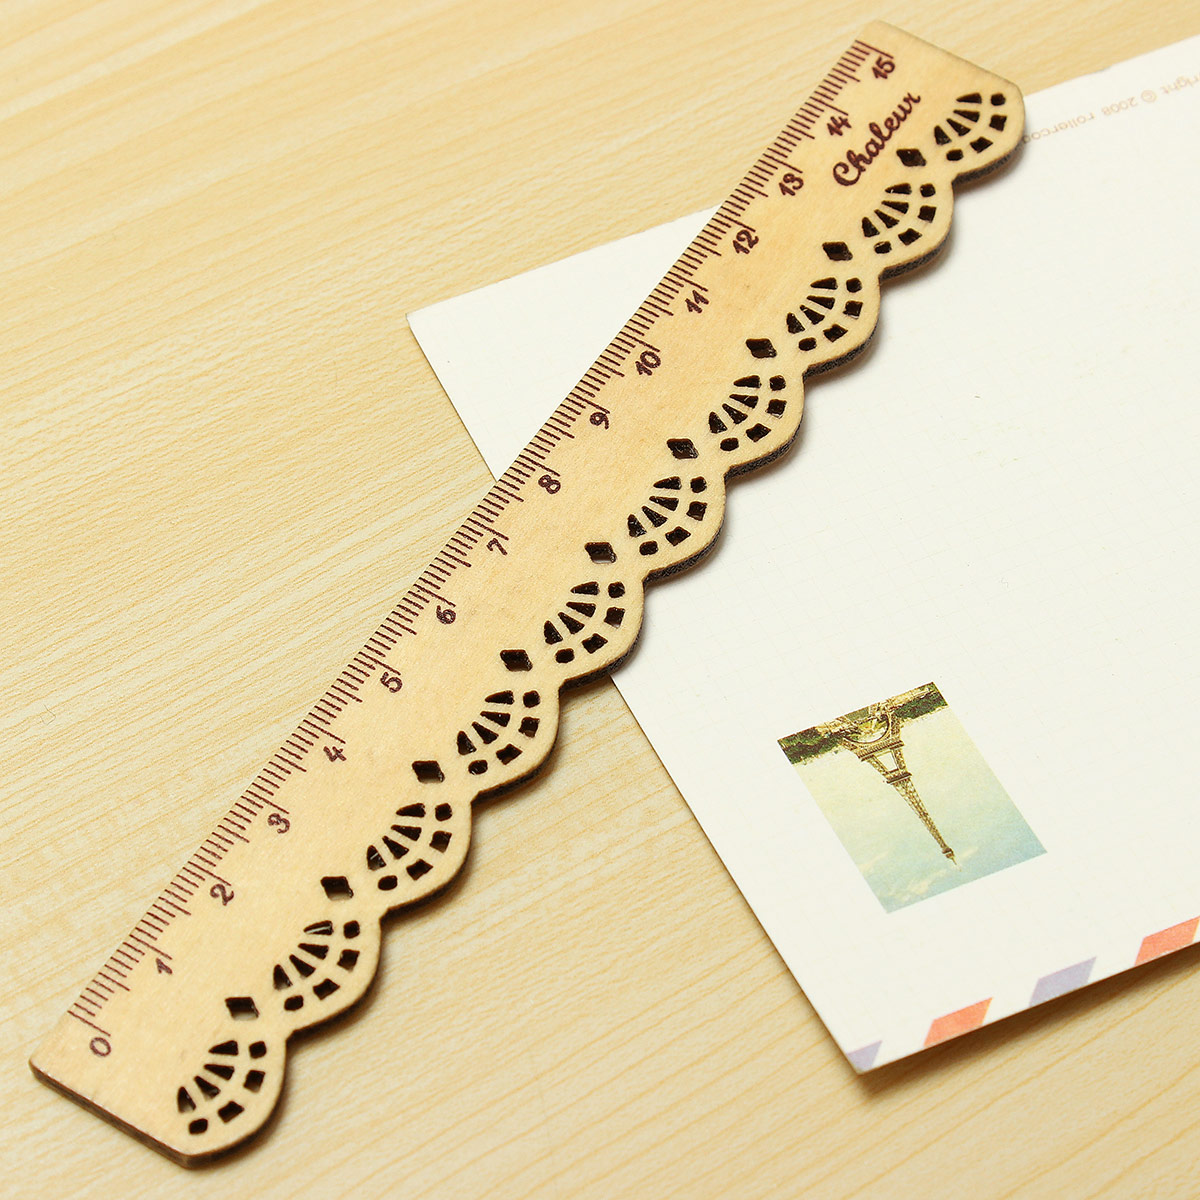 1pcs Vintage Cute Lovely Lace Stationery Wood Ruler School Office Sewing Tools